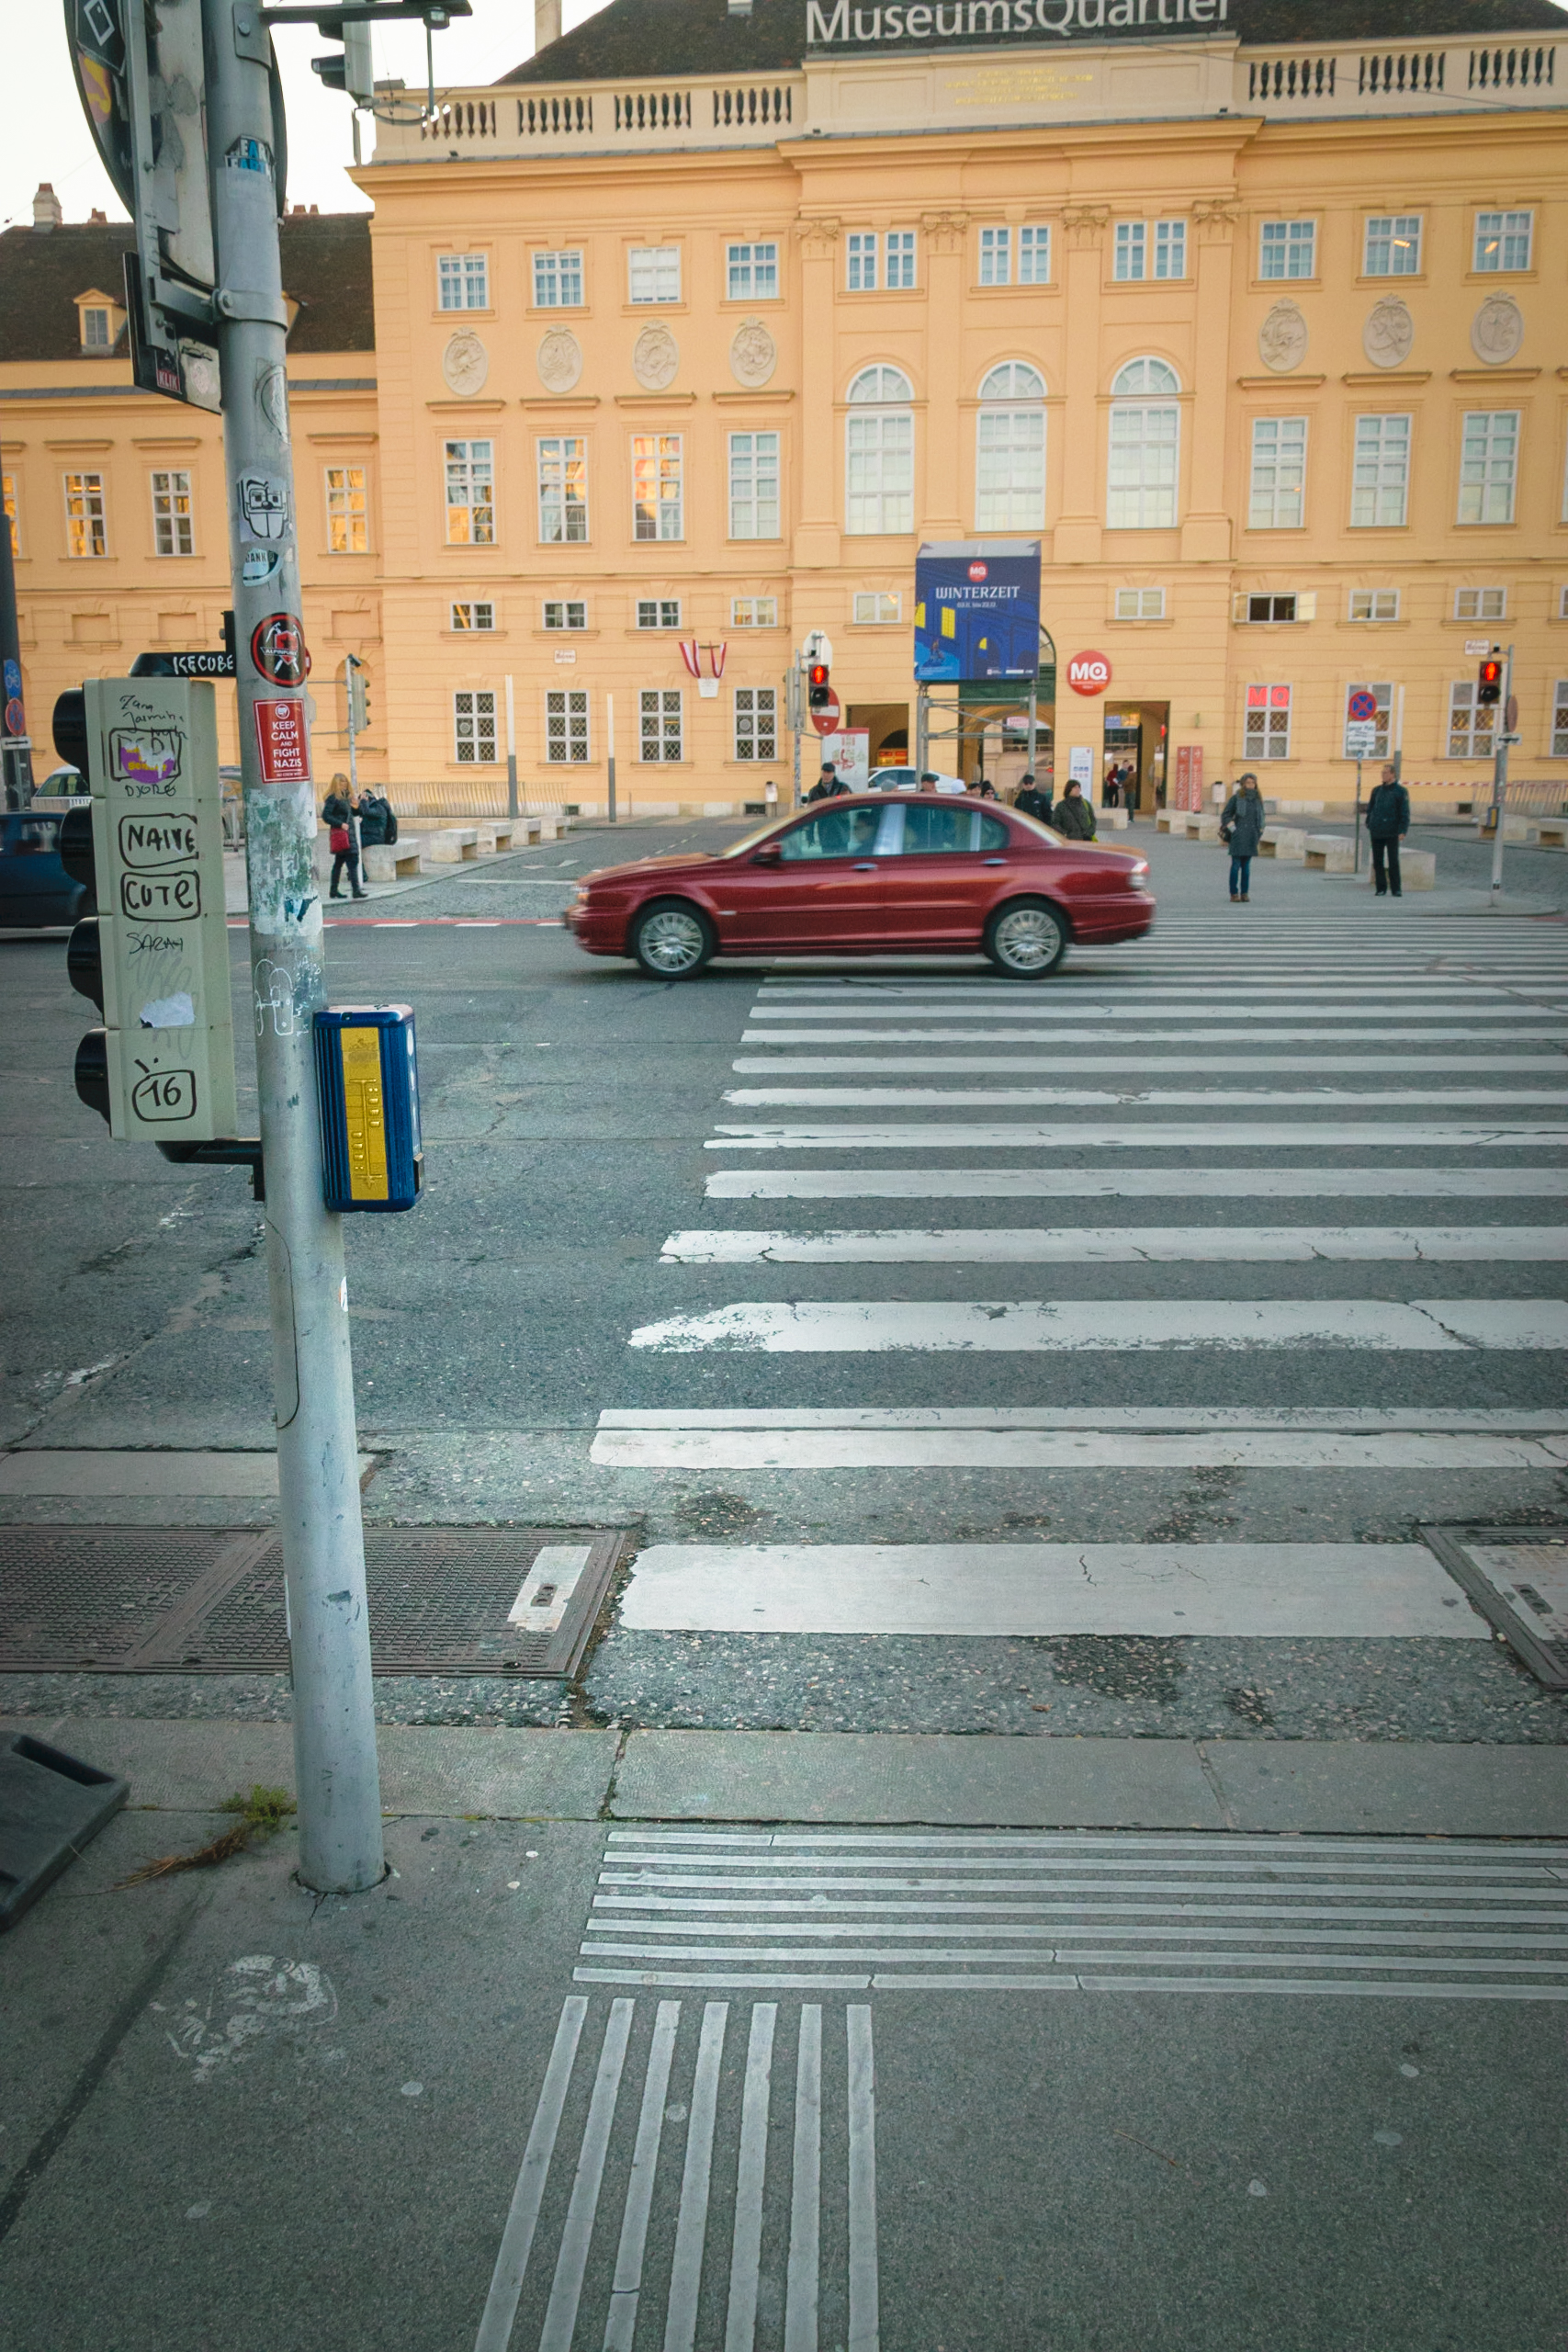 accessibility for the visually-impaired